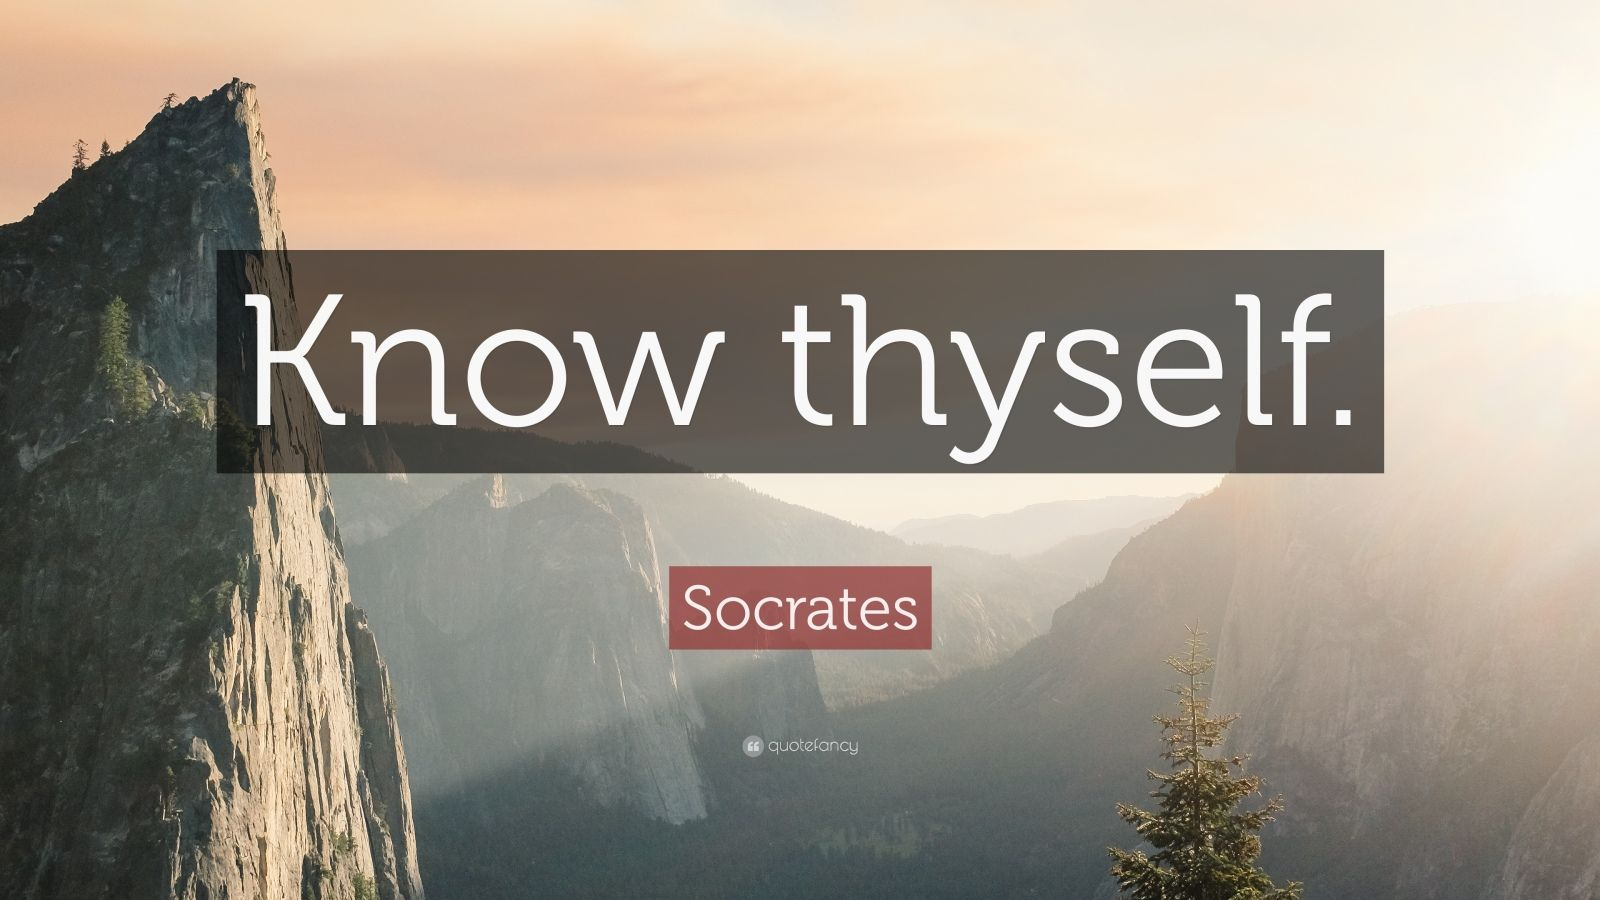 Love Inspiring Quotes Wallpaper Socrates Quote Know Thyself 32 Wallpapers Quotefancy